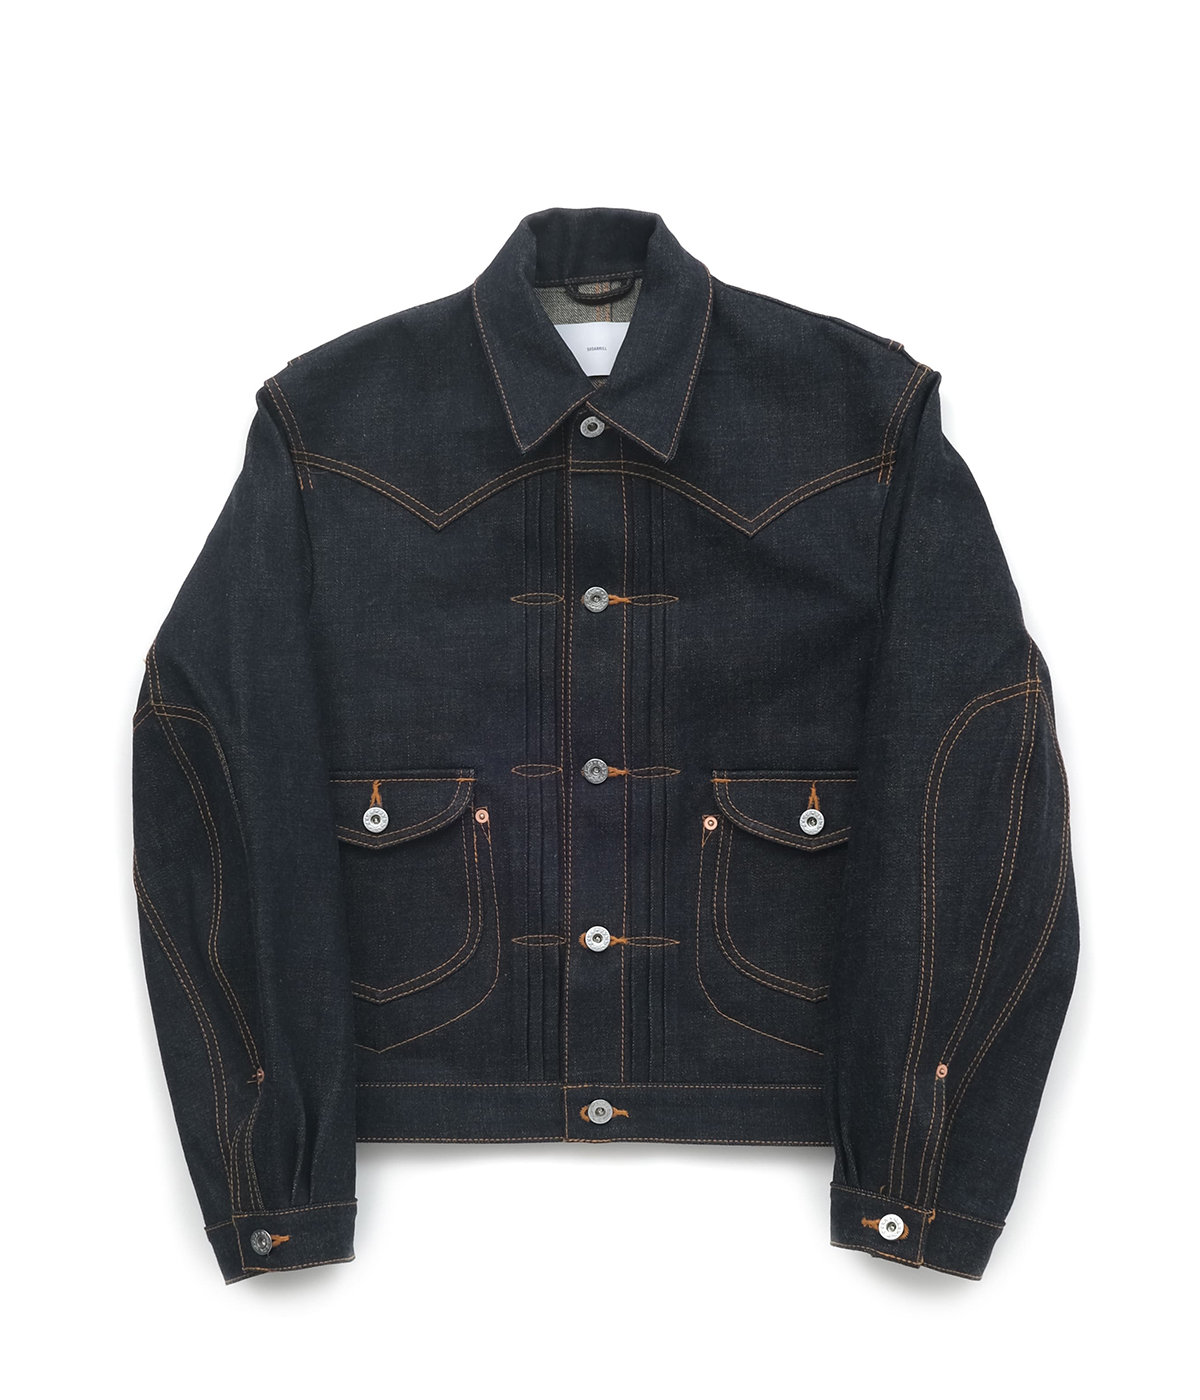 【予約】CLASSIC DENIM JACKET